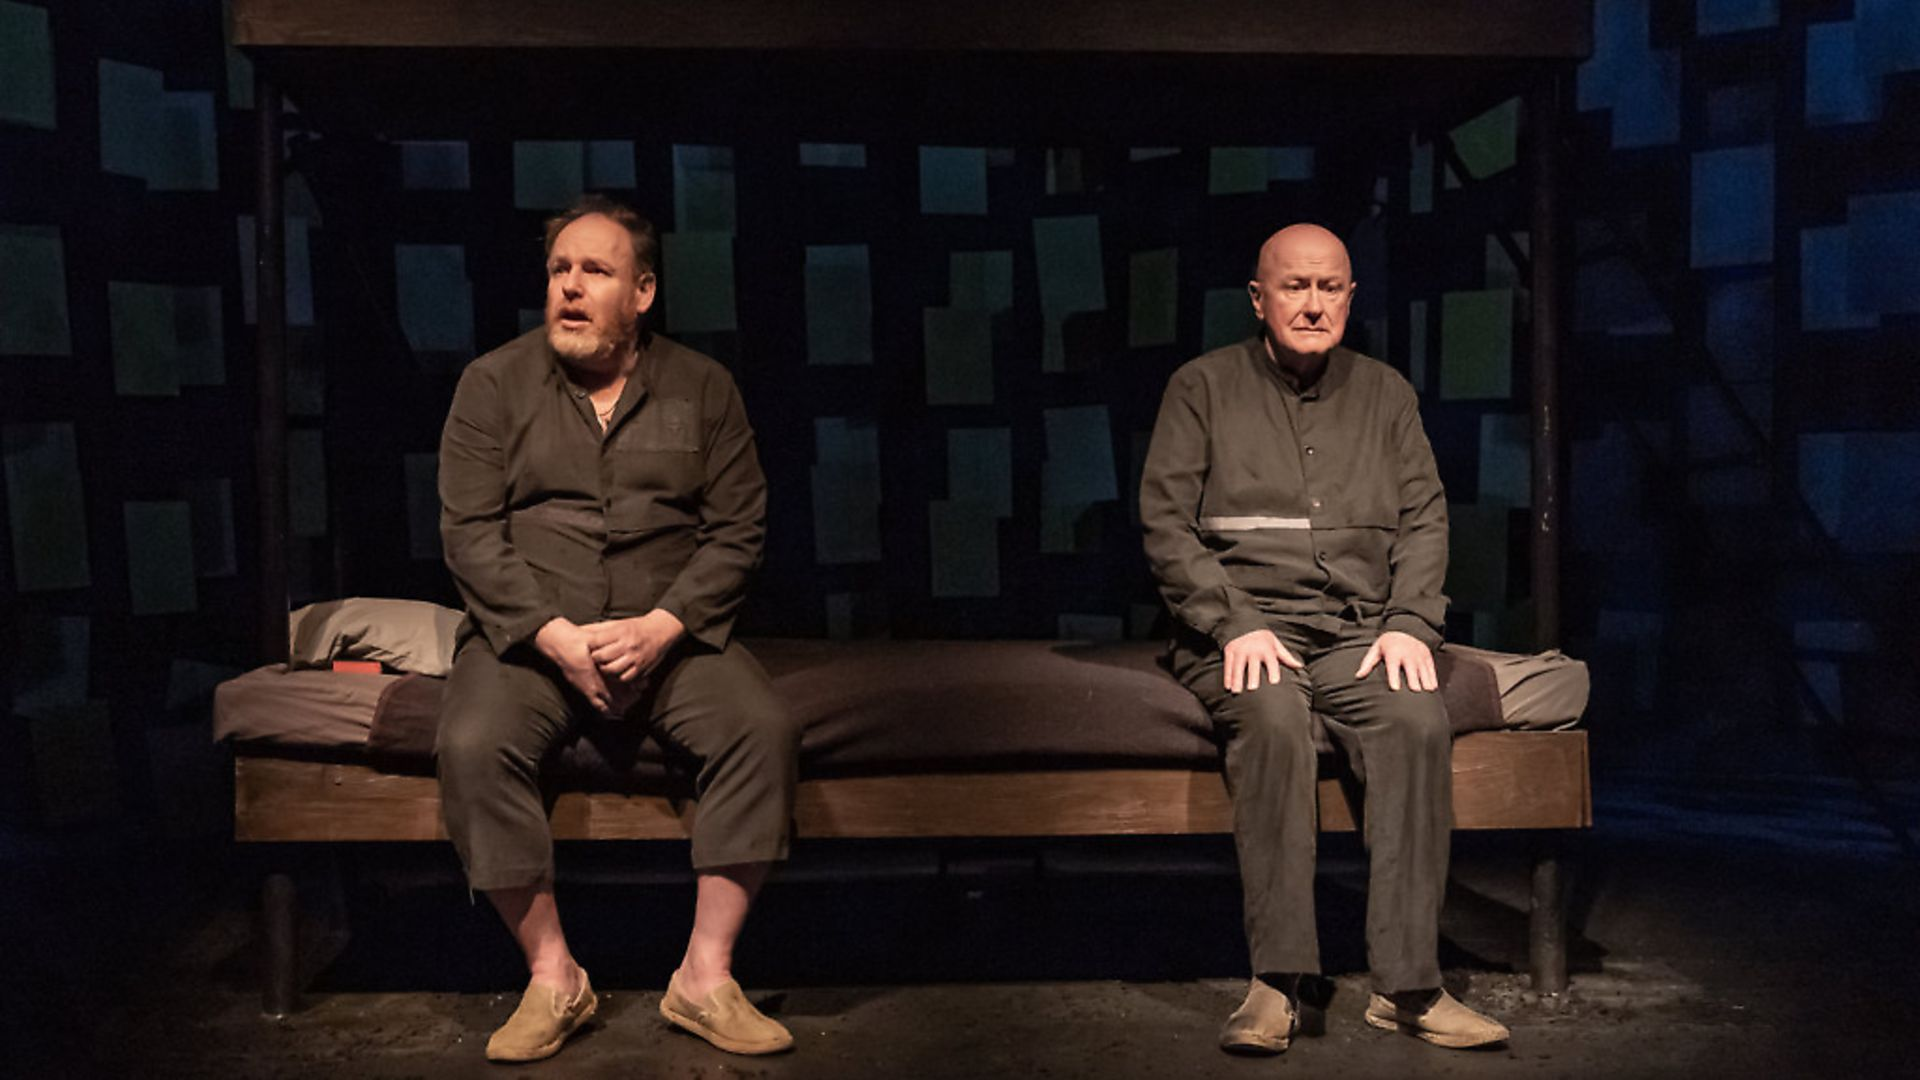 Niall Buggy and David Ganly in 'On Blueberry Hill' at Trafalgar Studios, London. Picture: Marc Brenner - Credit: Archant